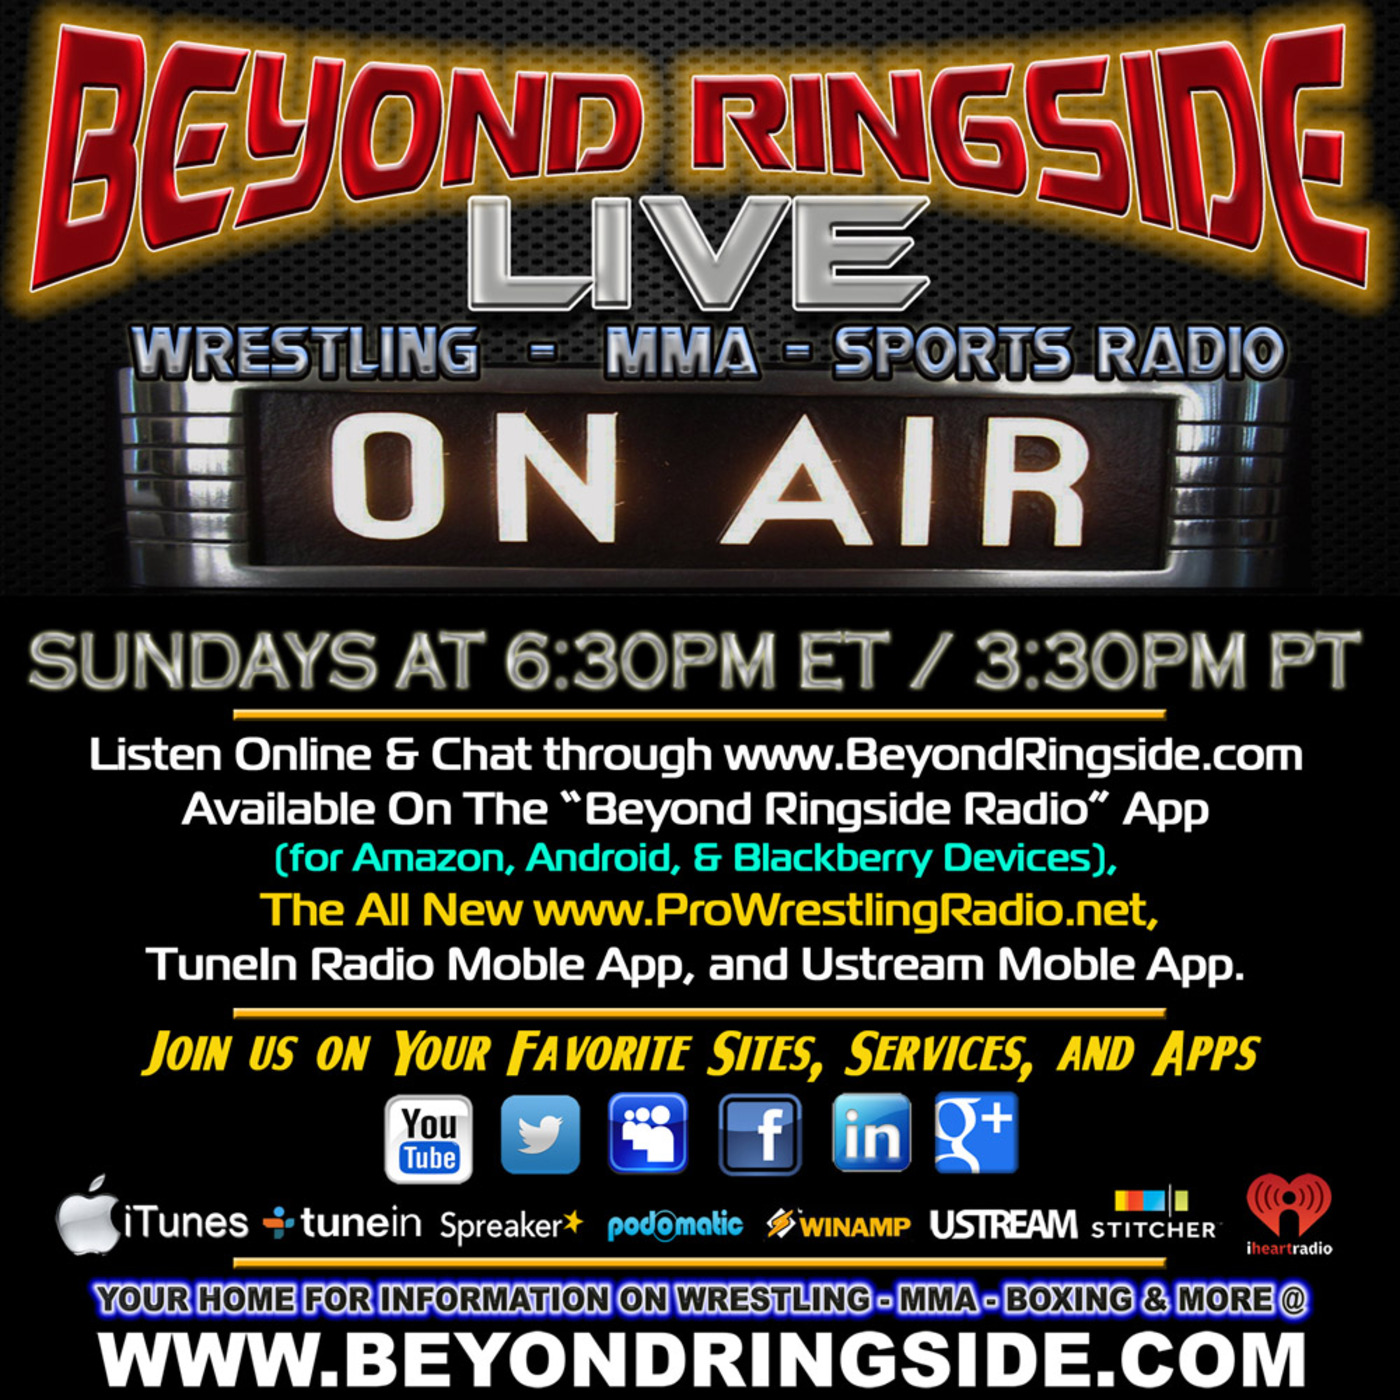 Beyond Ringside Live - August 4, 2019 Beyond Ringside podcast